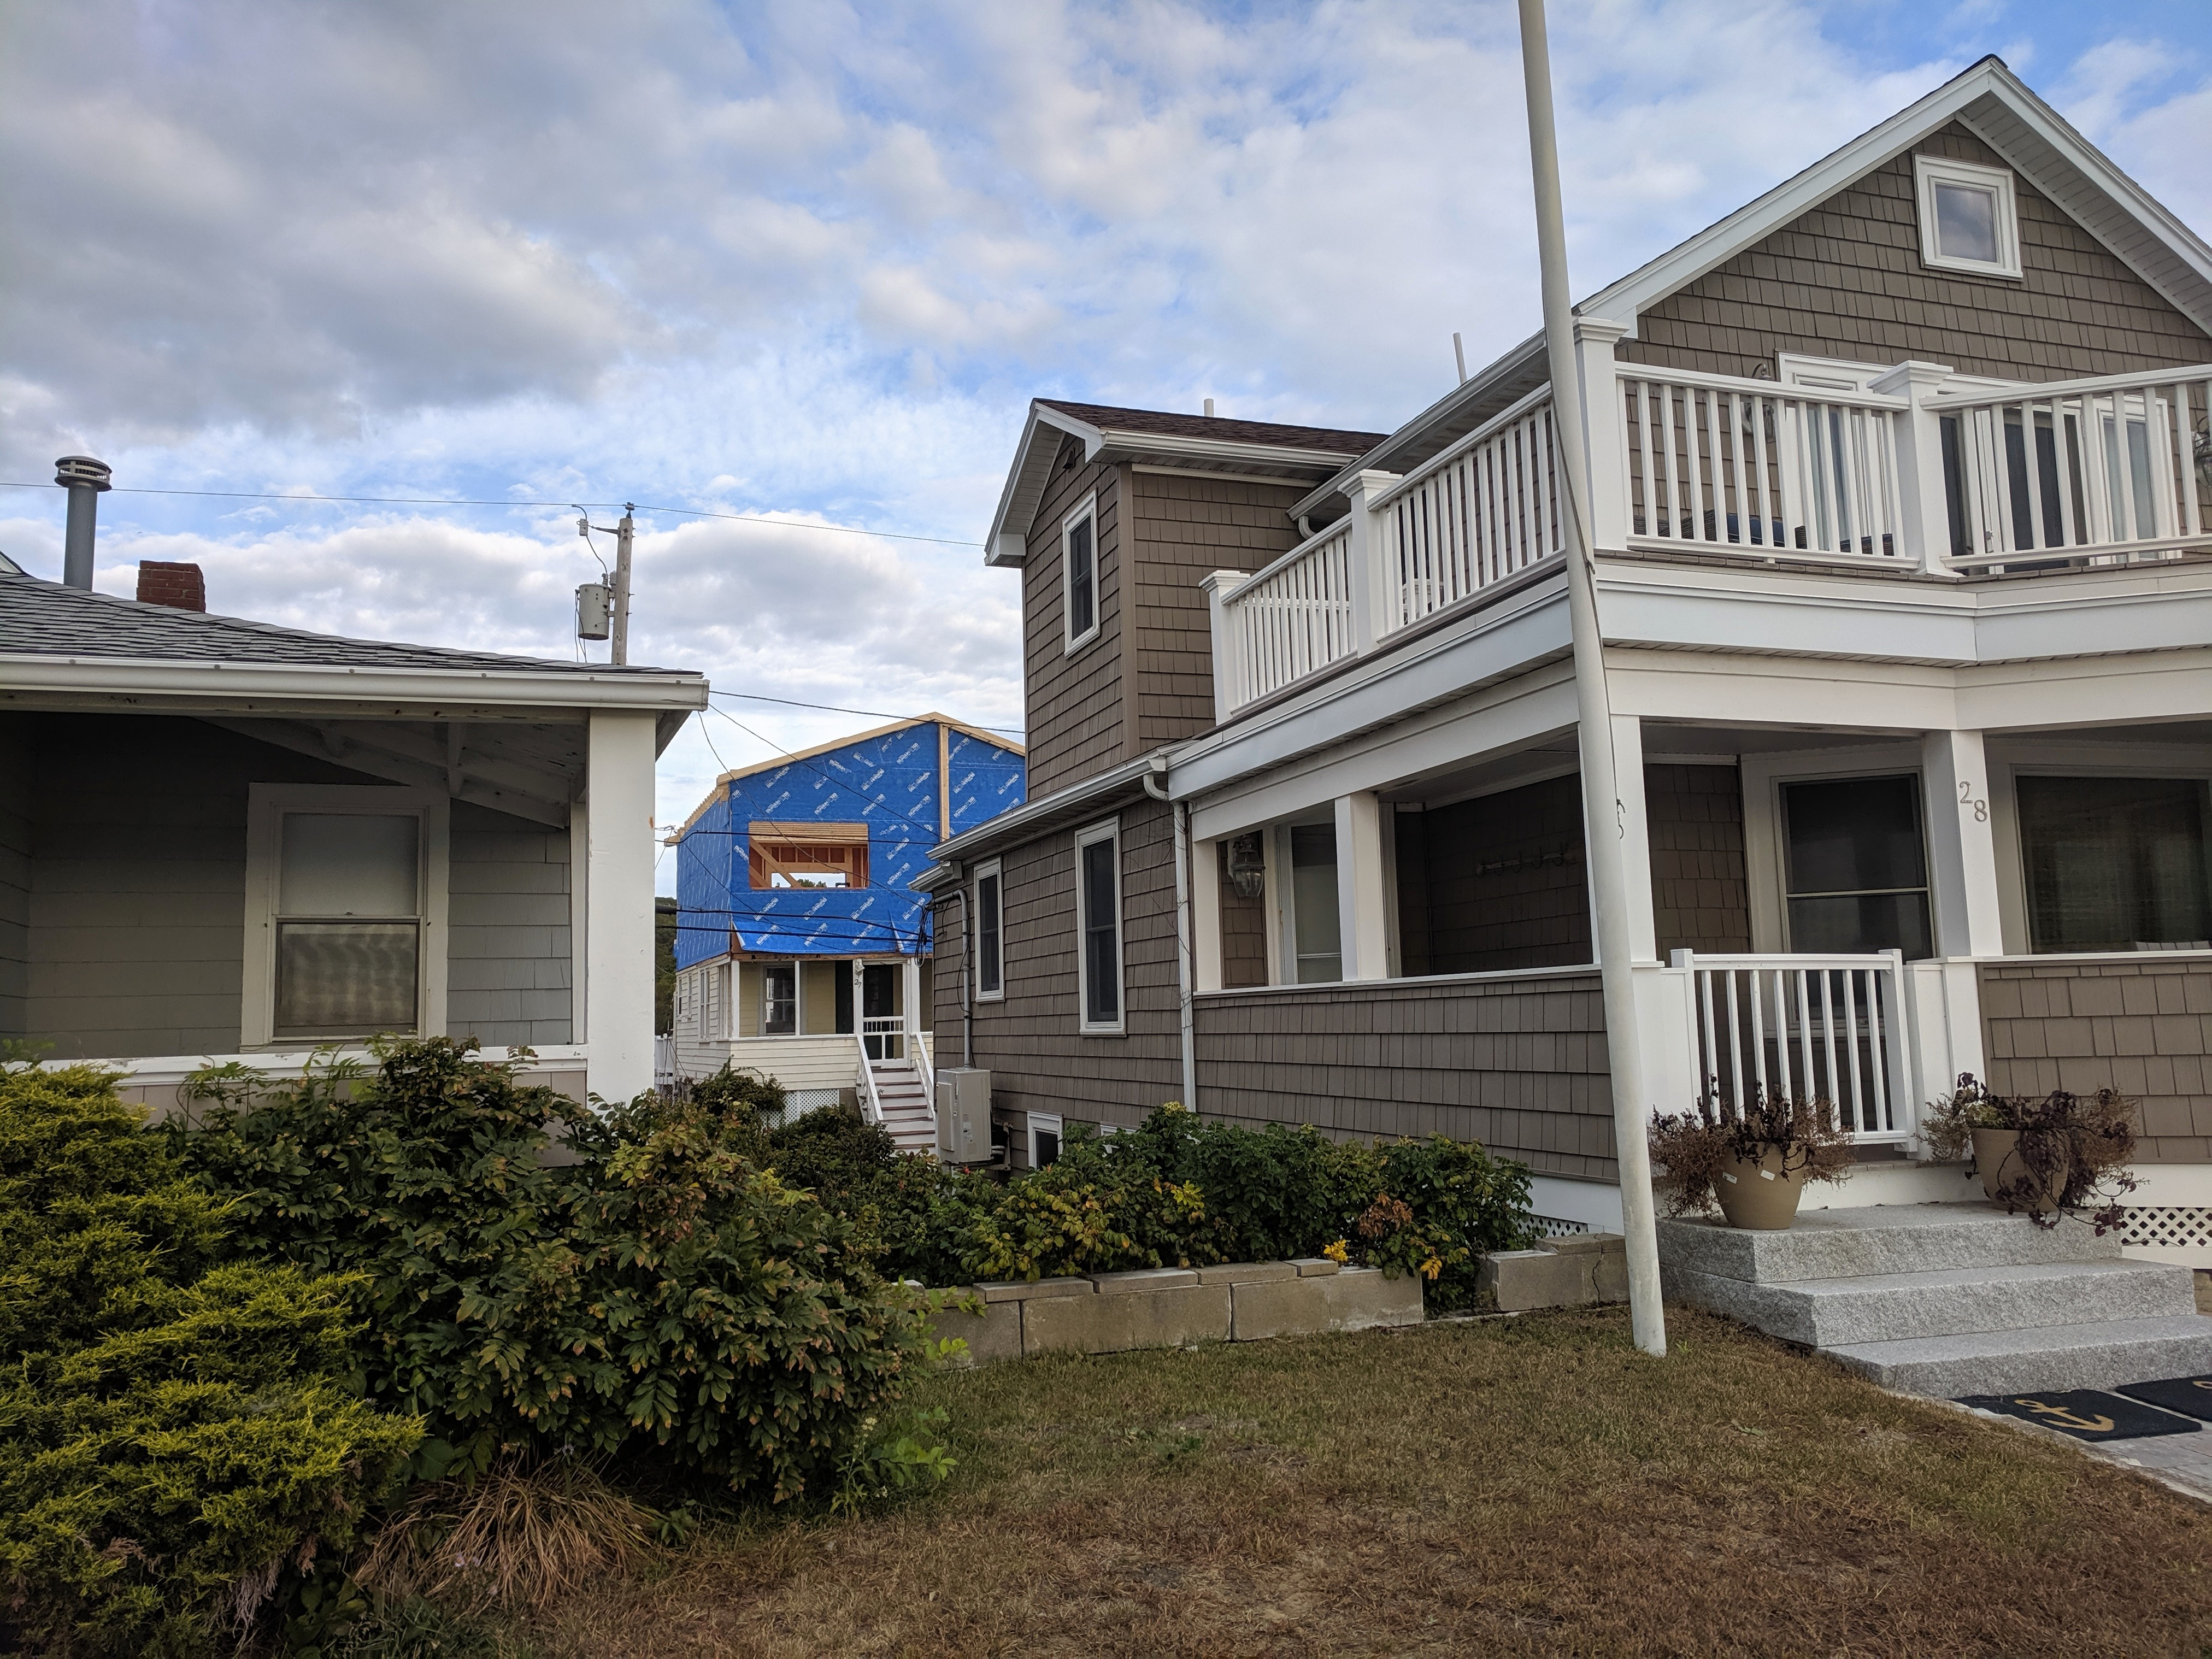 construction behind 28 Long Beach front row cottage_Oct 2019 photograph©c ryan